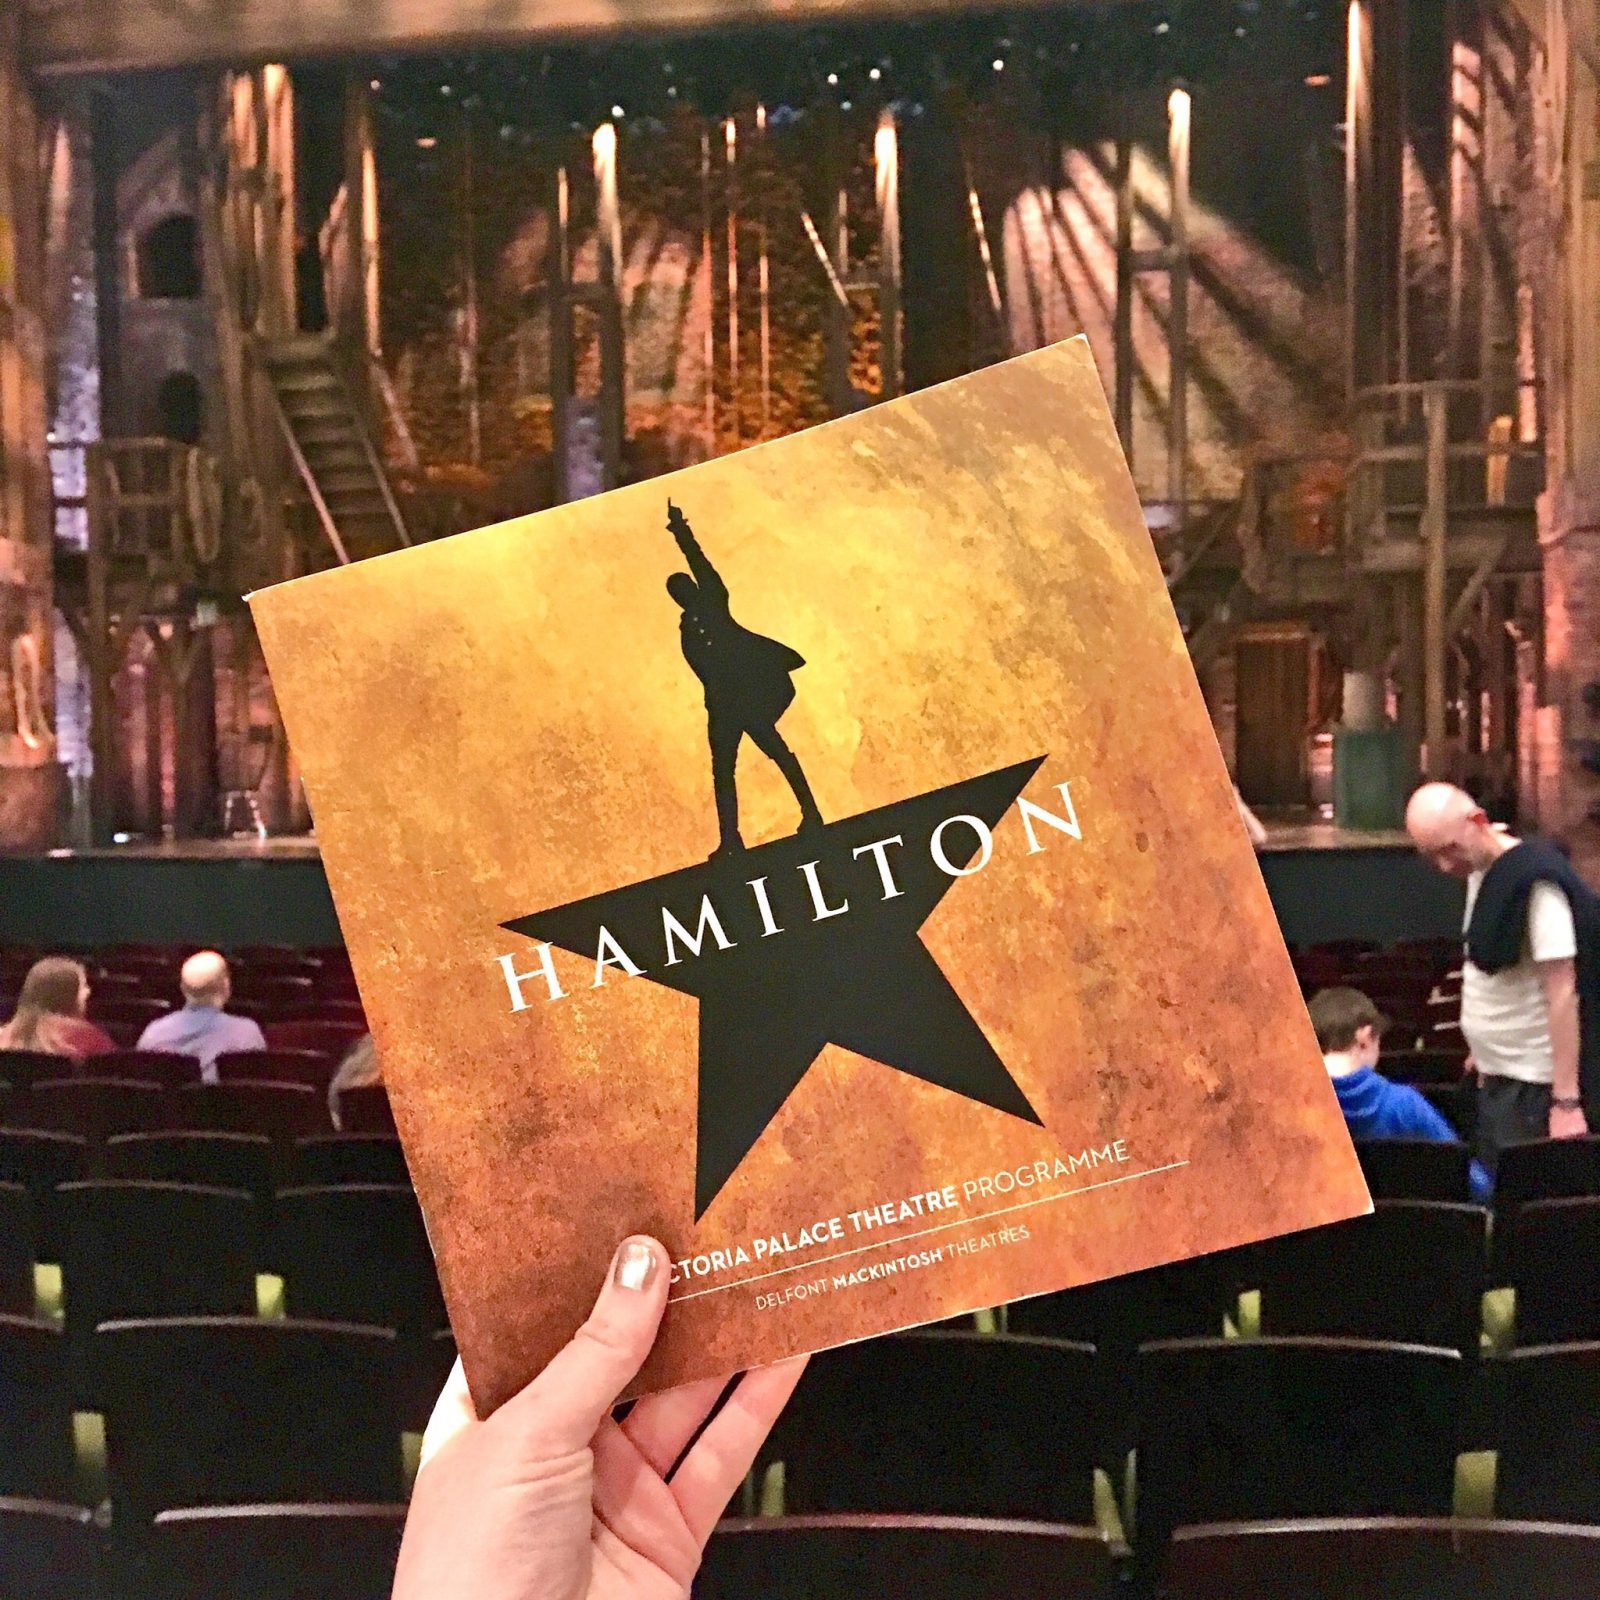 square hamilton programme held up by a hand in front of the stage